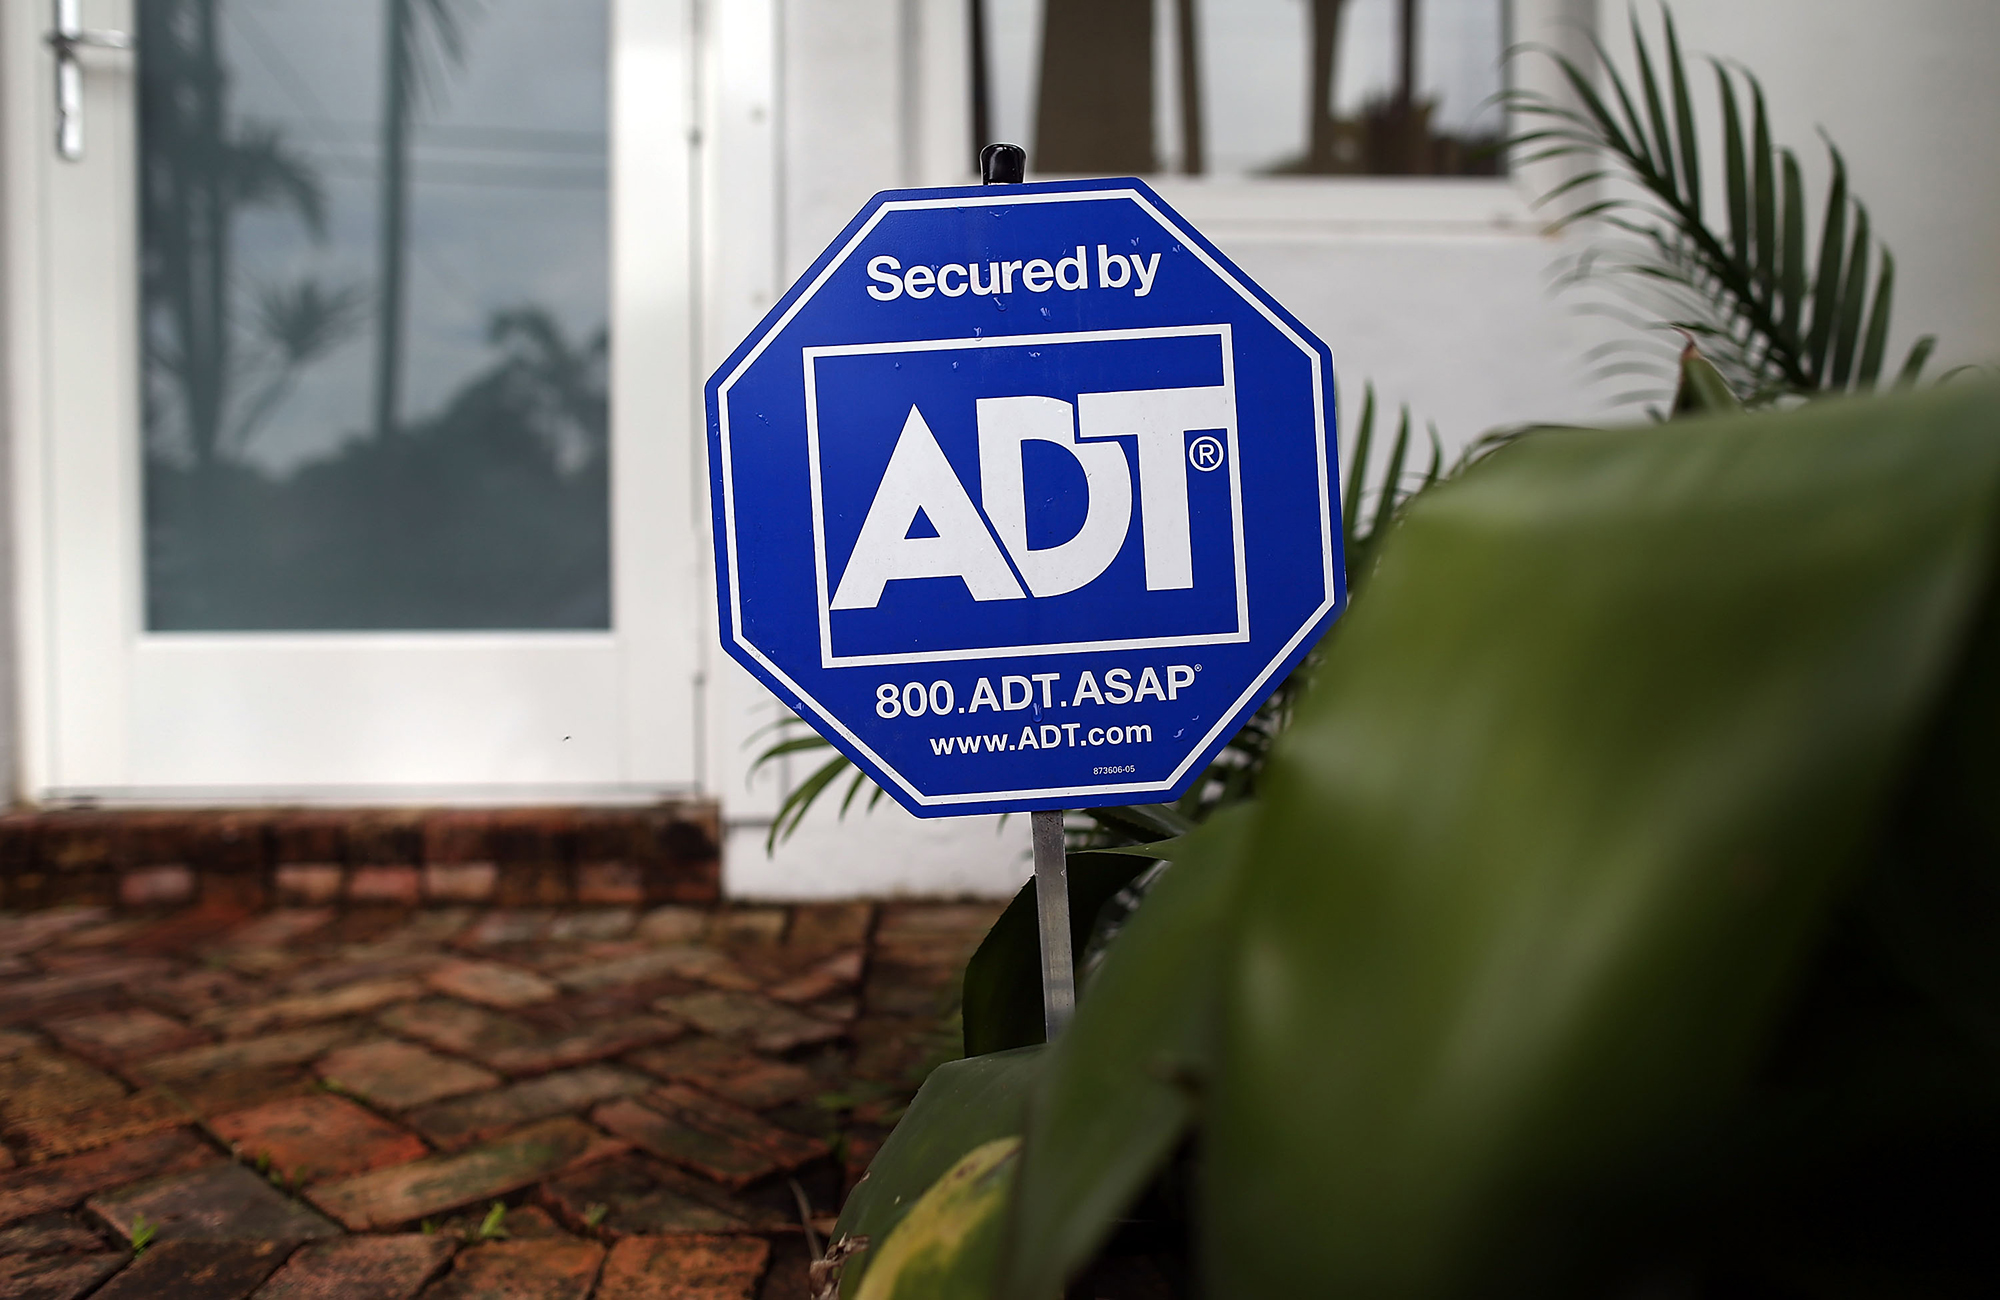 ADT stock soars 65% after $450 million investment from Google